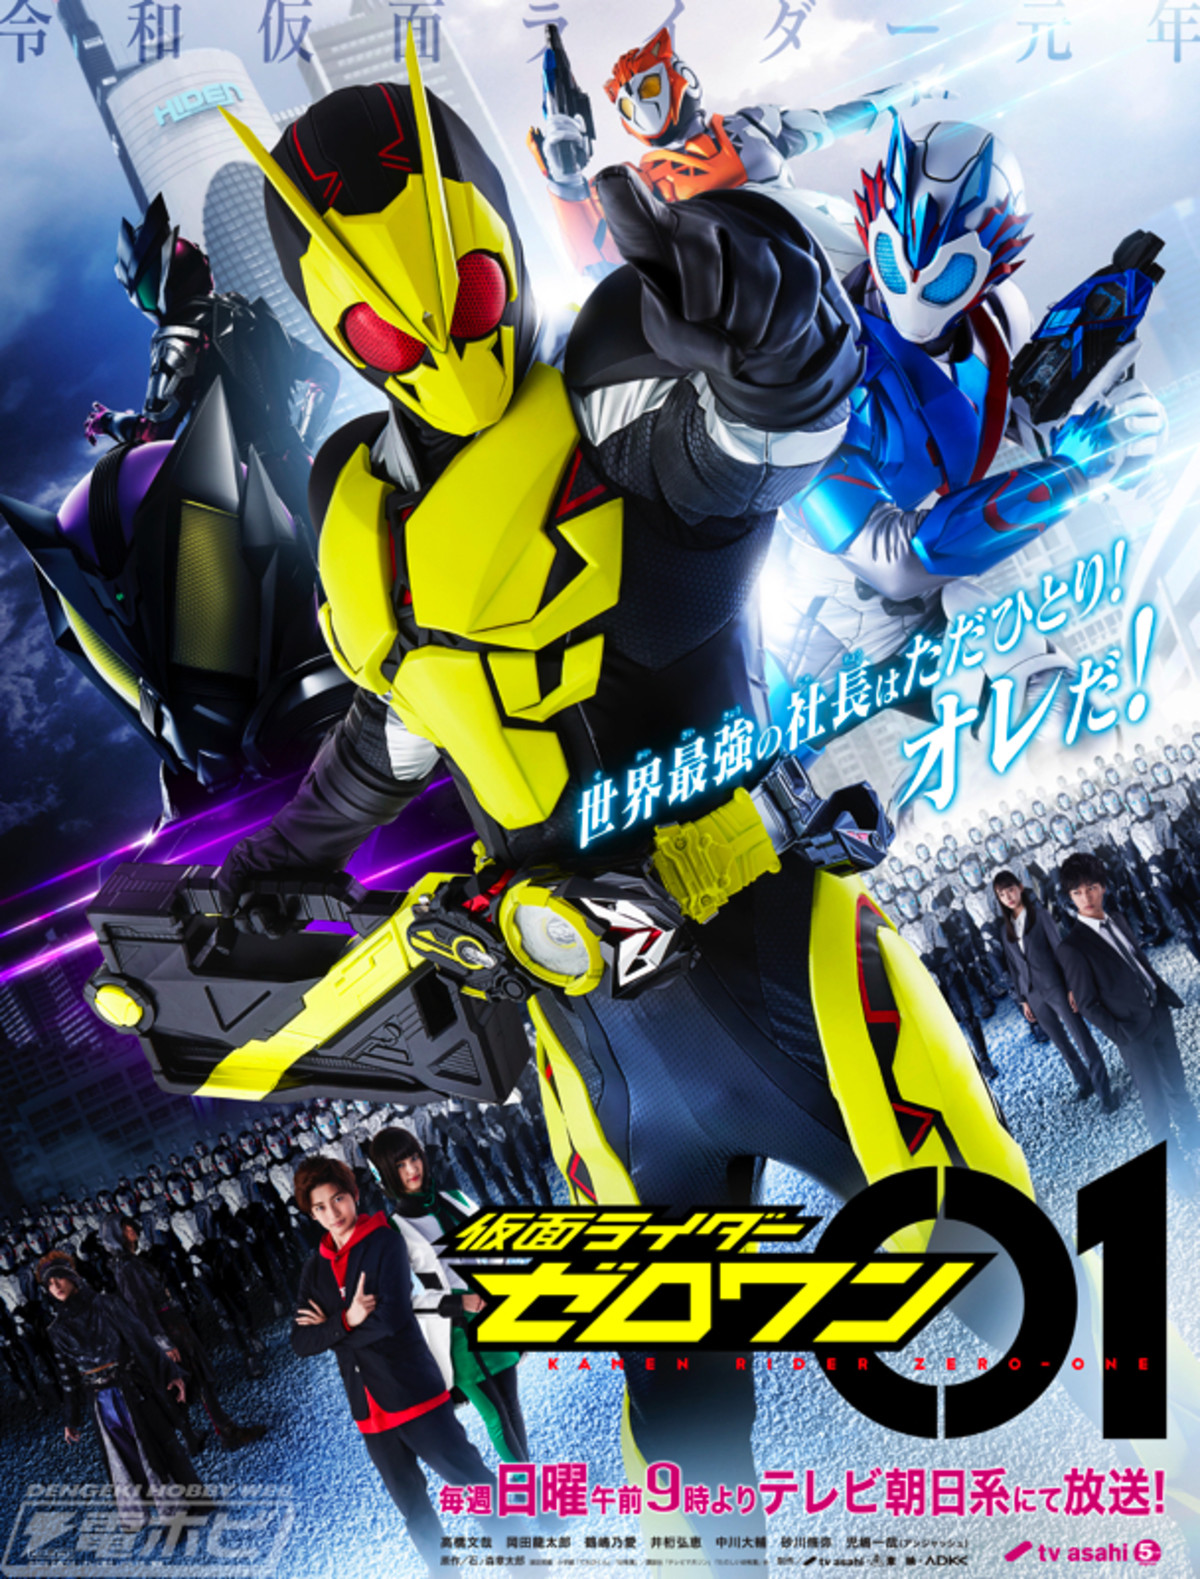 Kamen rider Zero-one. Just watched the first episode of this show.... I think this one is gonna be interesting..